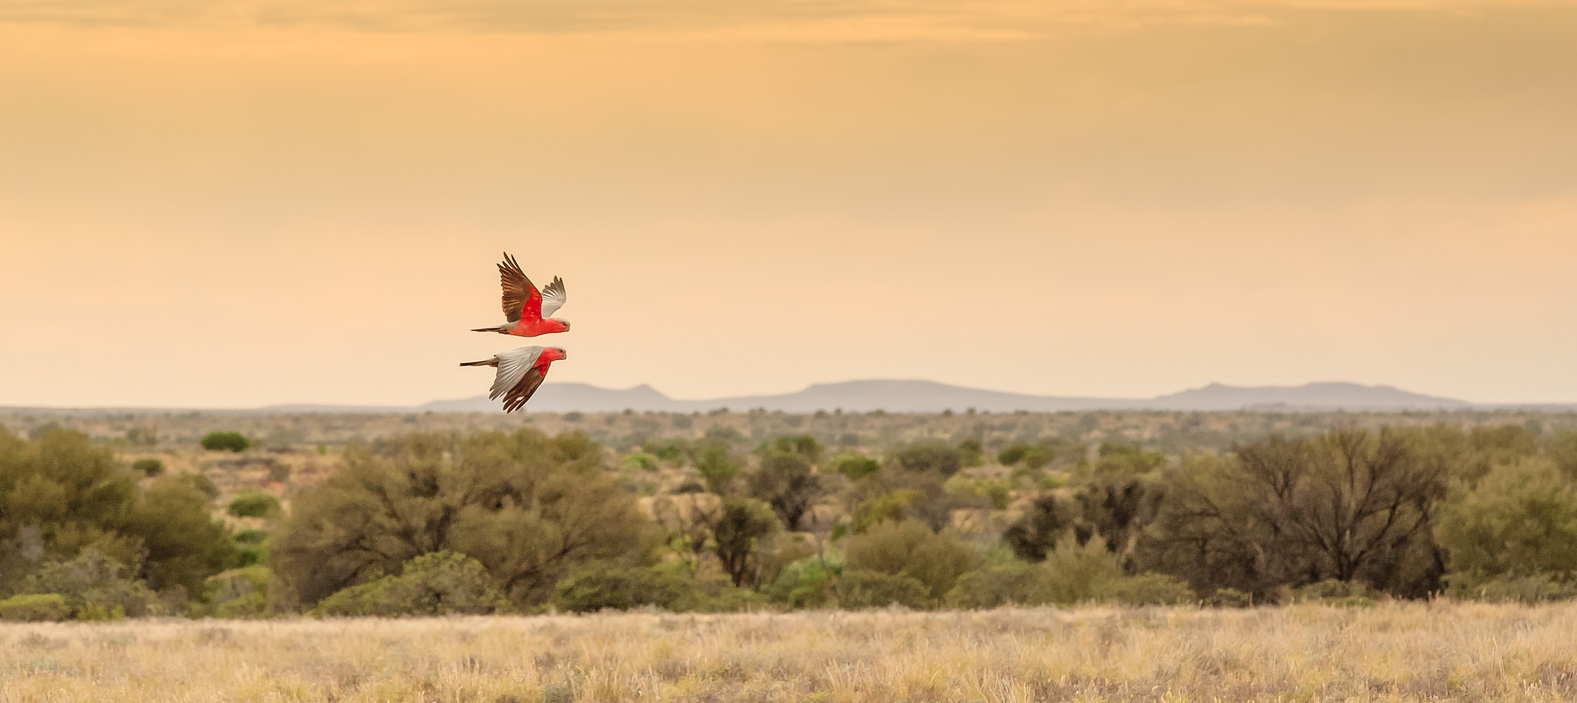 Red arrows in Witjira National Park, Simpson Desert, South Australia. Autor, Henk van den Brink